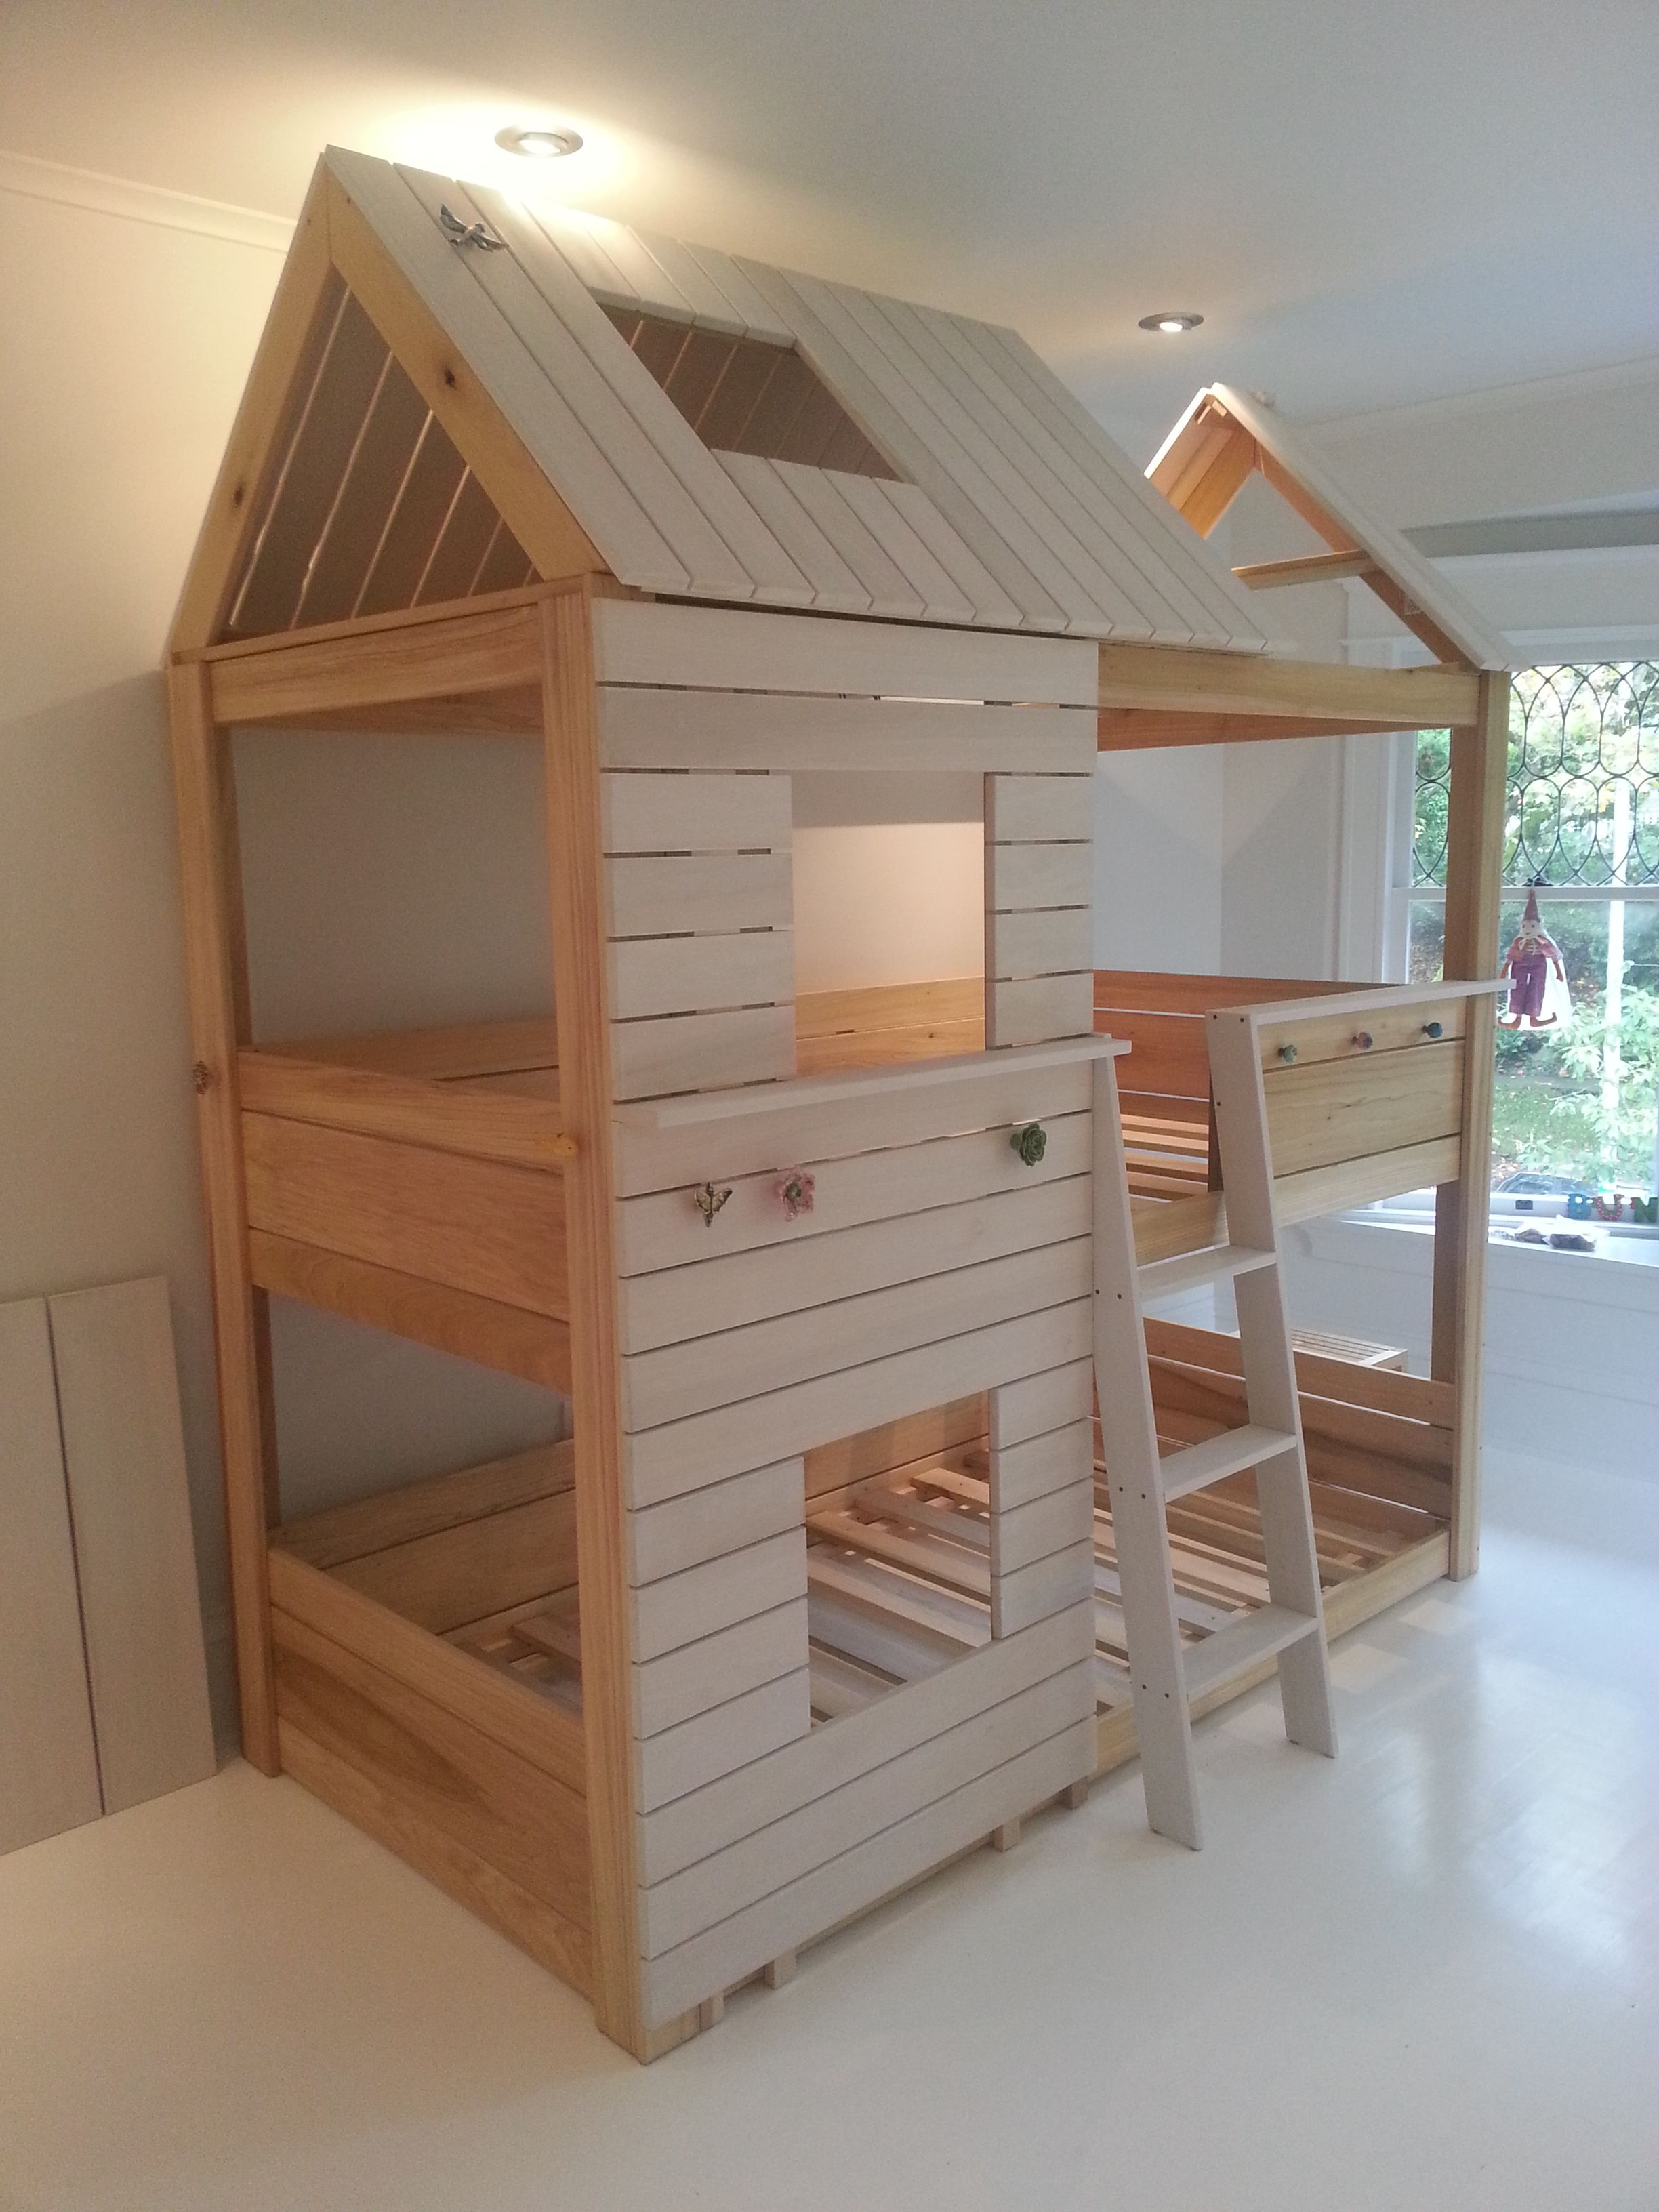 4,700 front angle one House bunk bed, Diy bunk bed